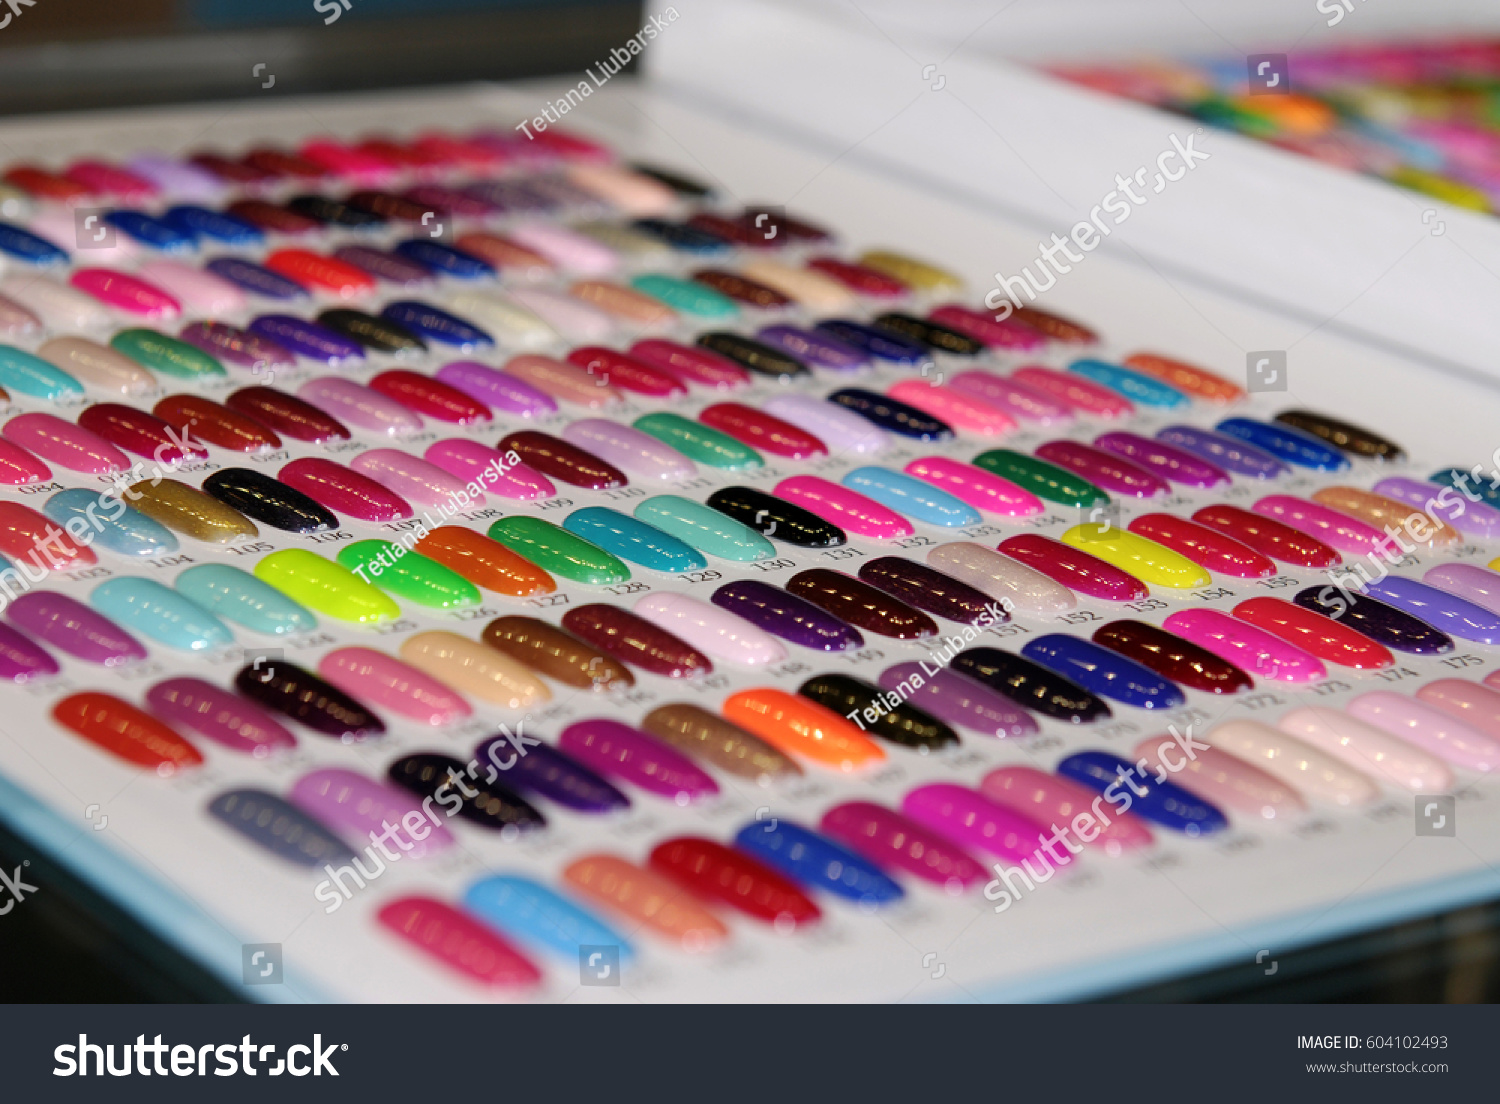 Samples Color Nail Polish Palette Examples Stock Photo & Image ...